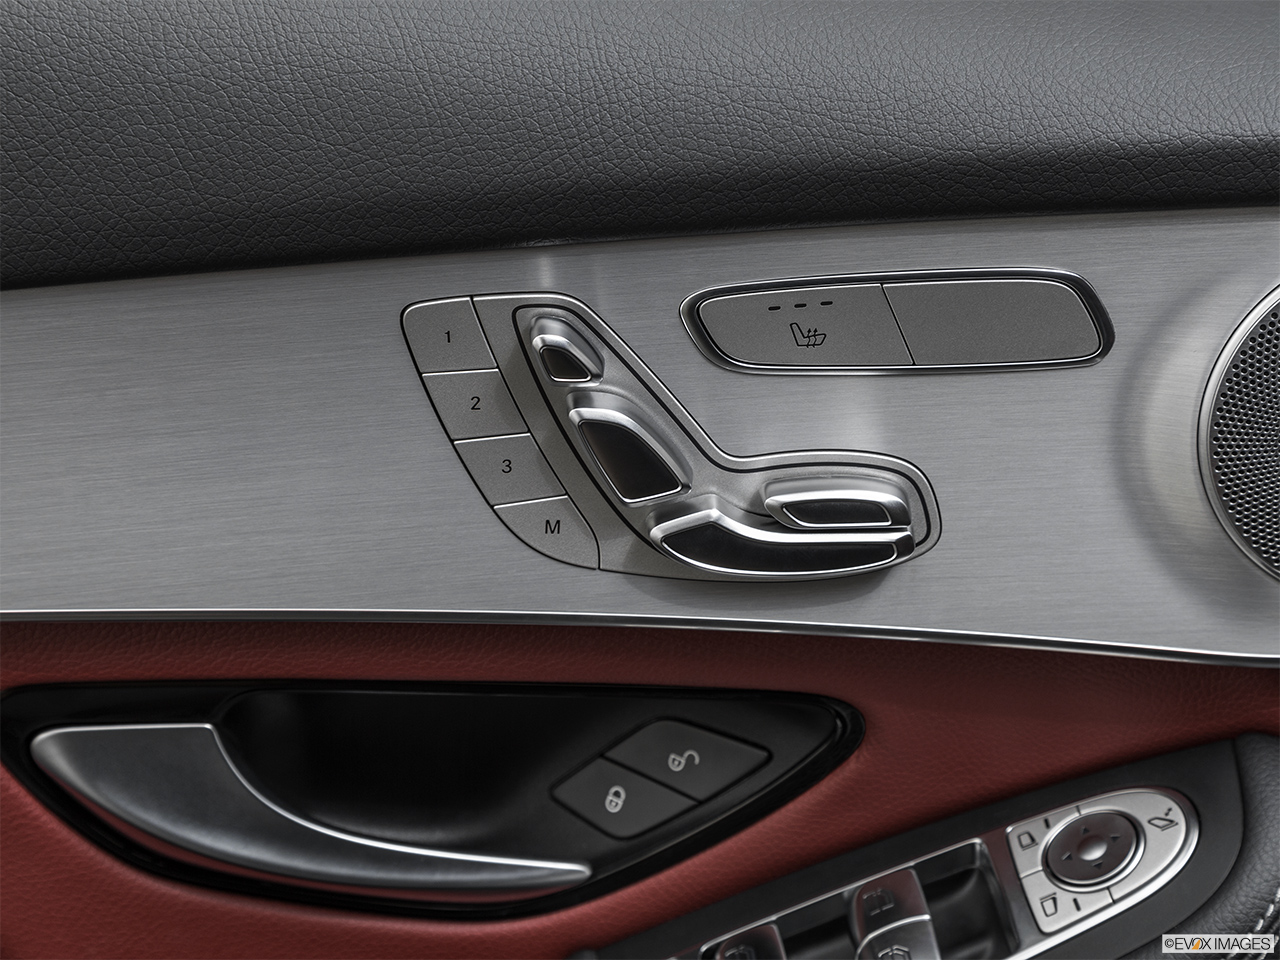 2019 Mercedes-Benz GLC-Class Coupe GLC 300 4MATIC Seat Adjustment Controllers.